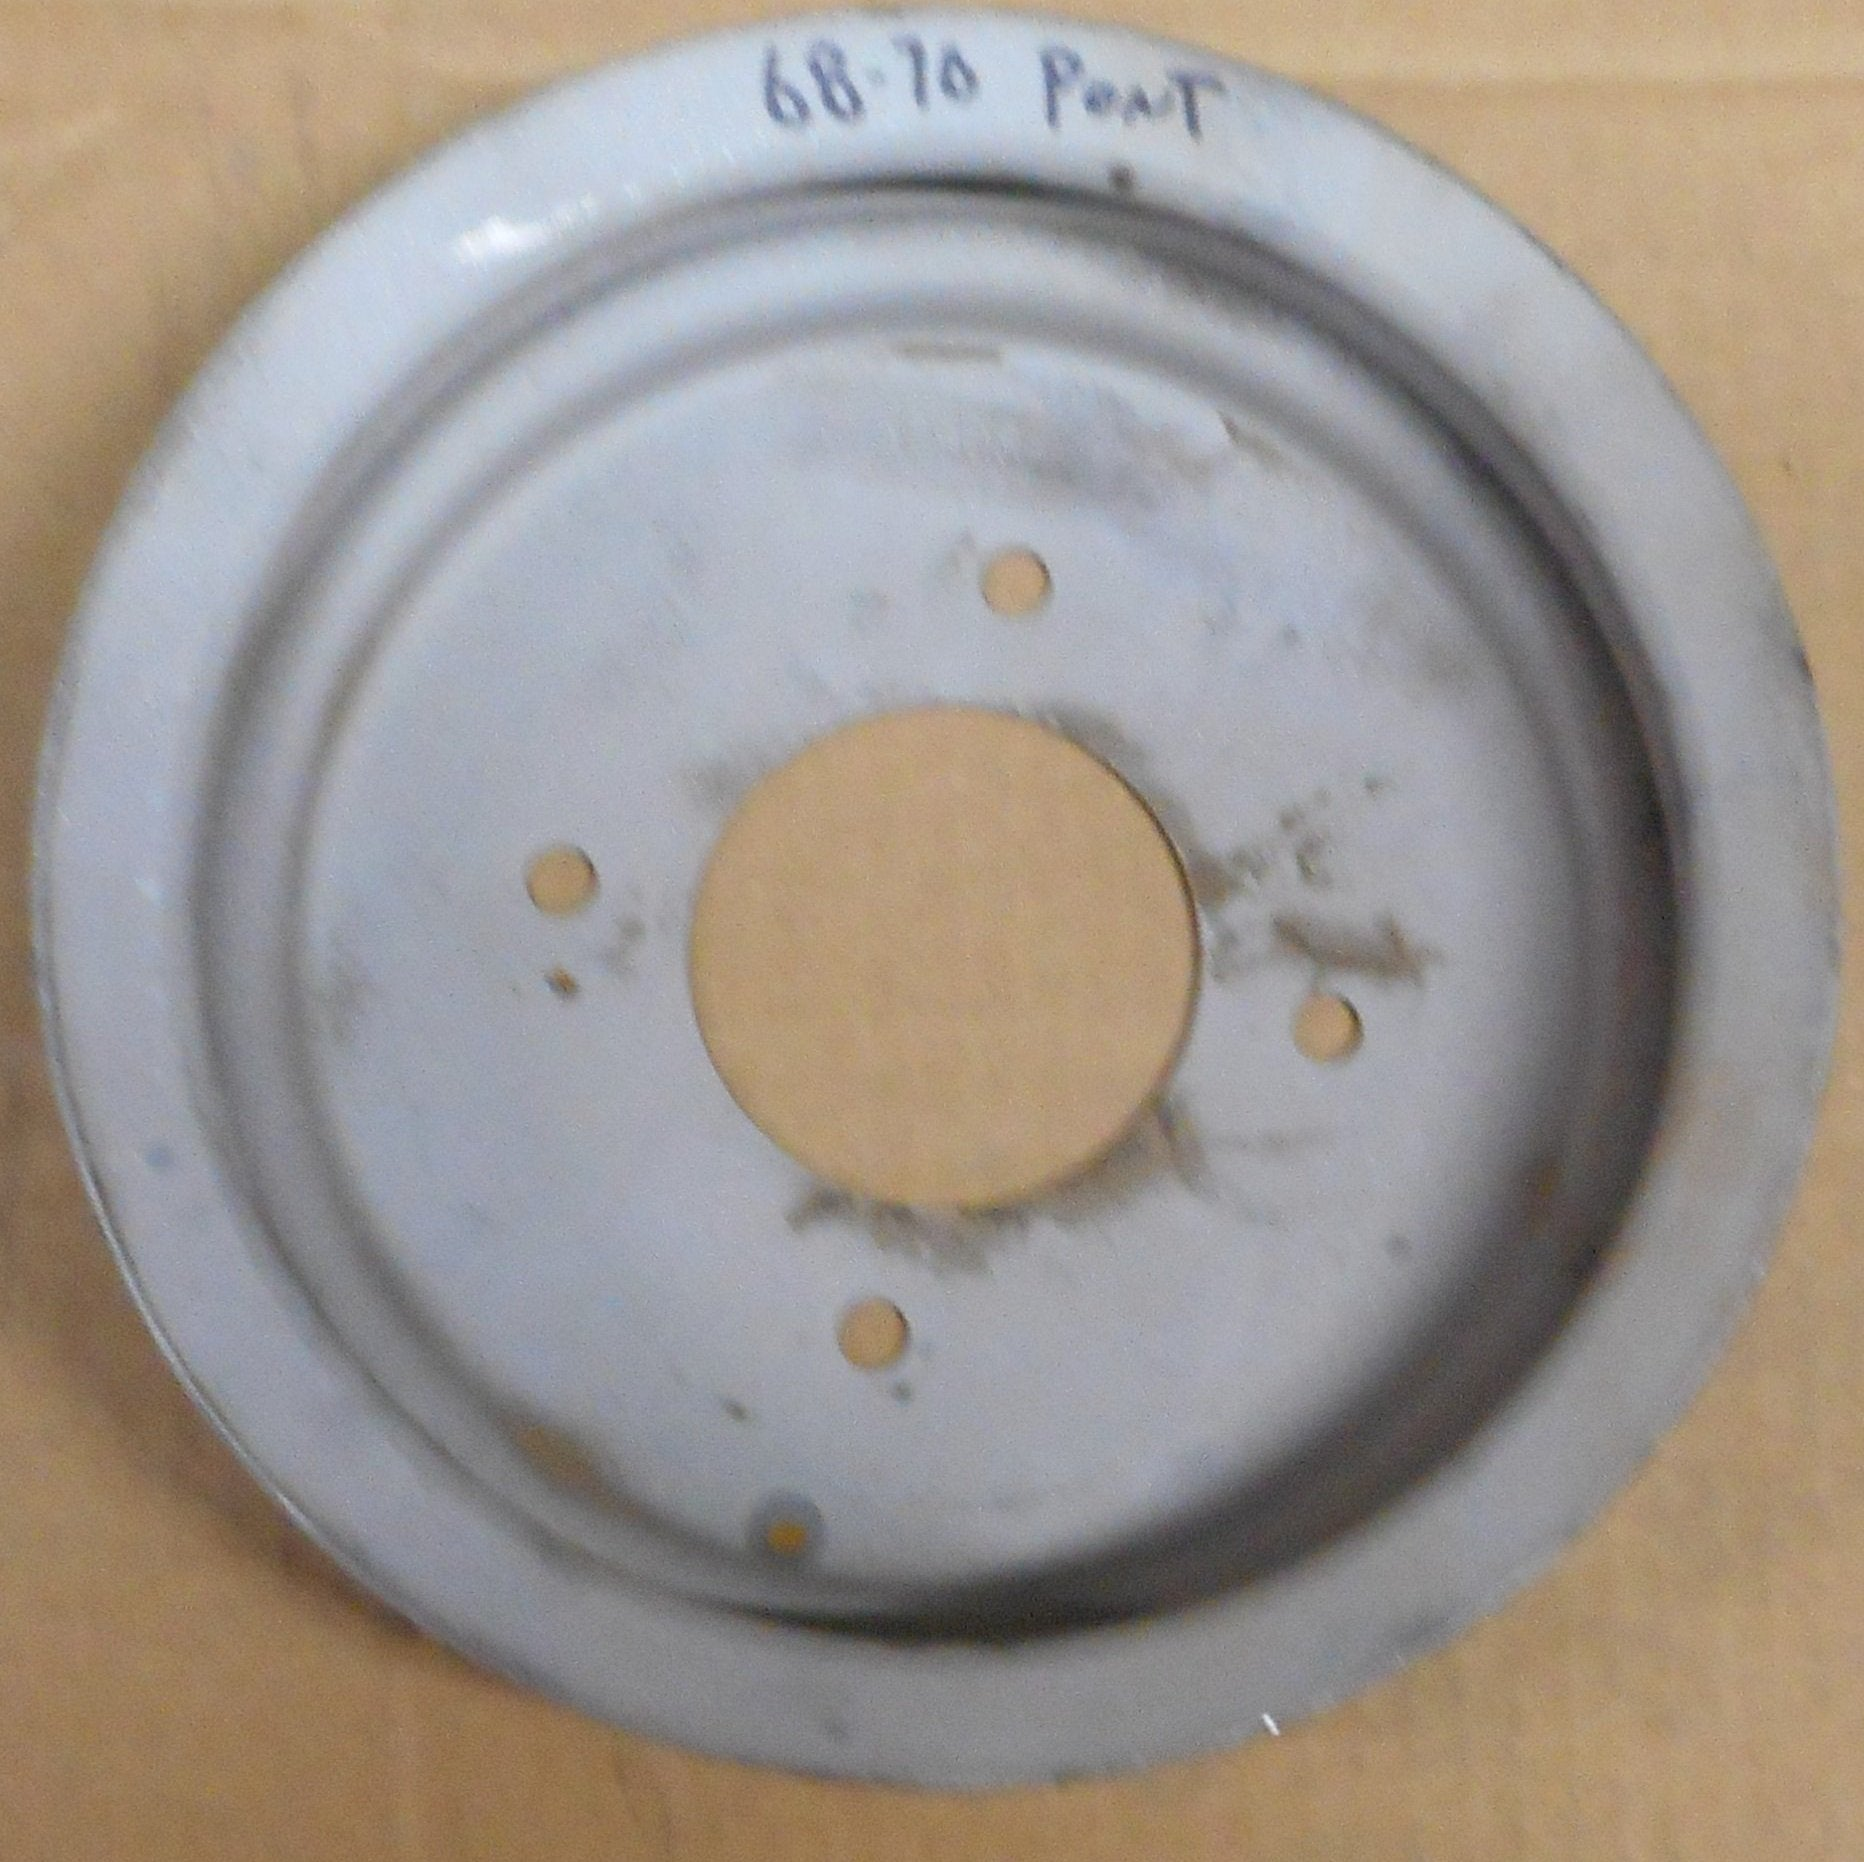 CRANK PULLEY, V8 AC PS 2 GROOVE, USED 68-70 PONTIAC